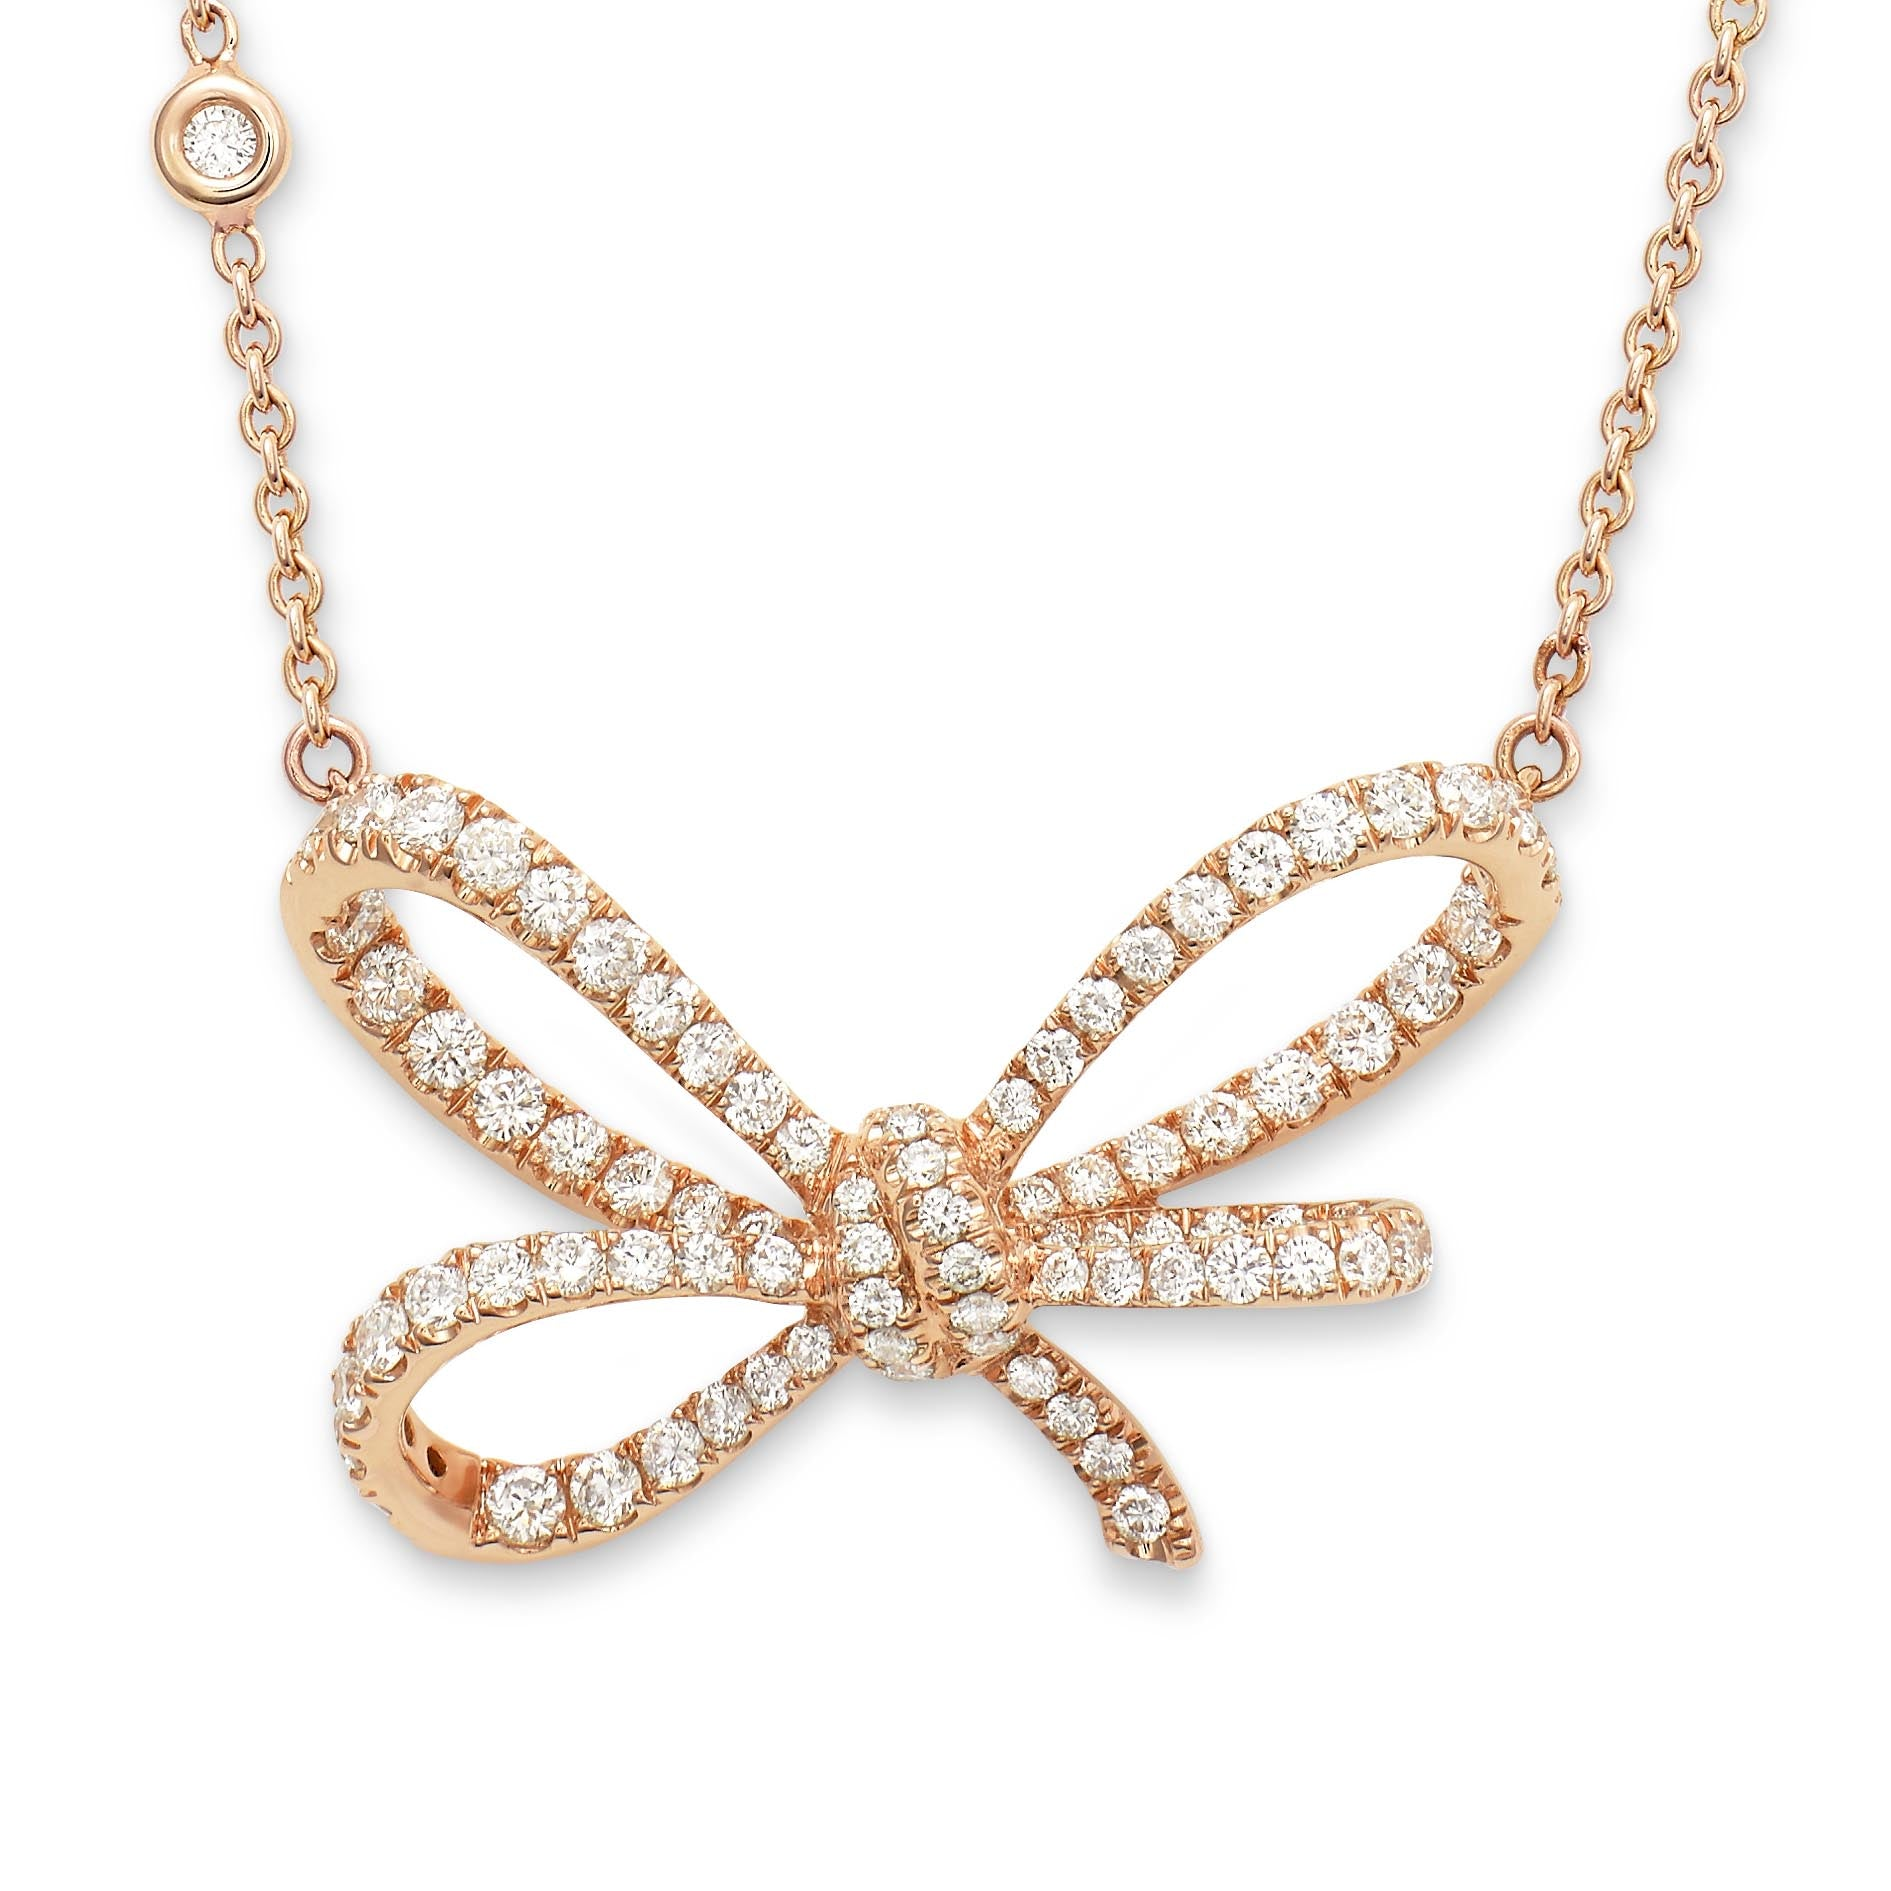 Necklace crafted 18K rose gold Lyla's Bow Collection